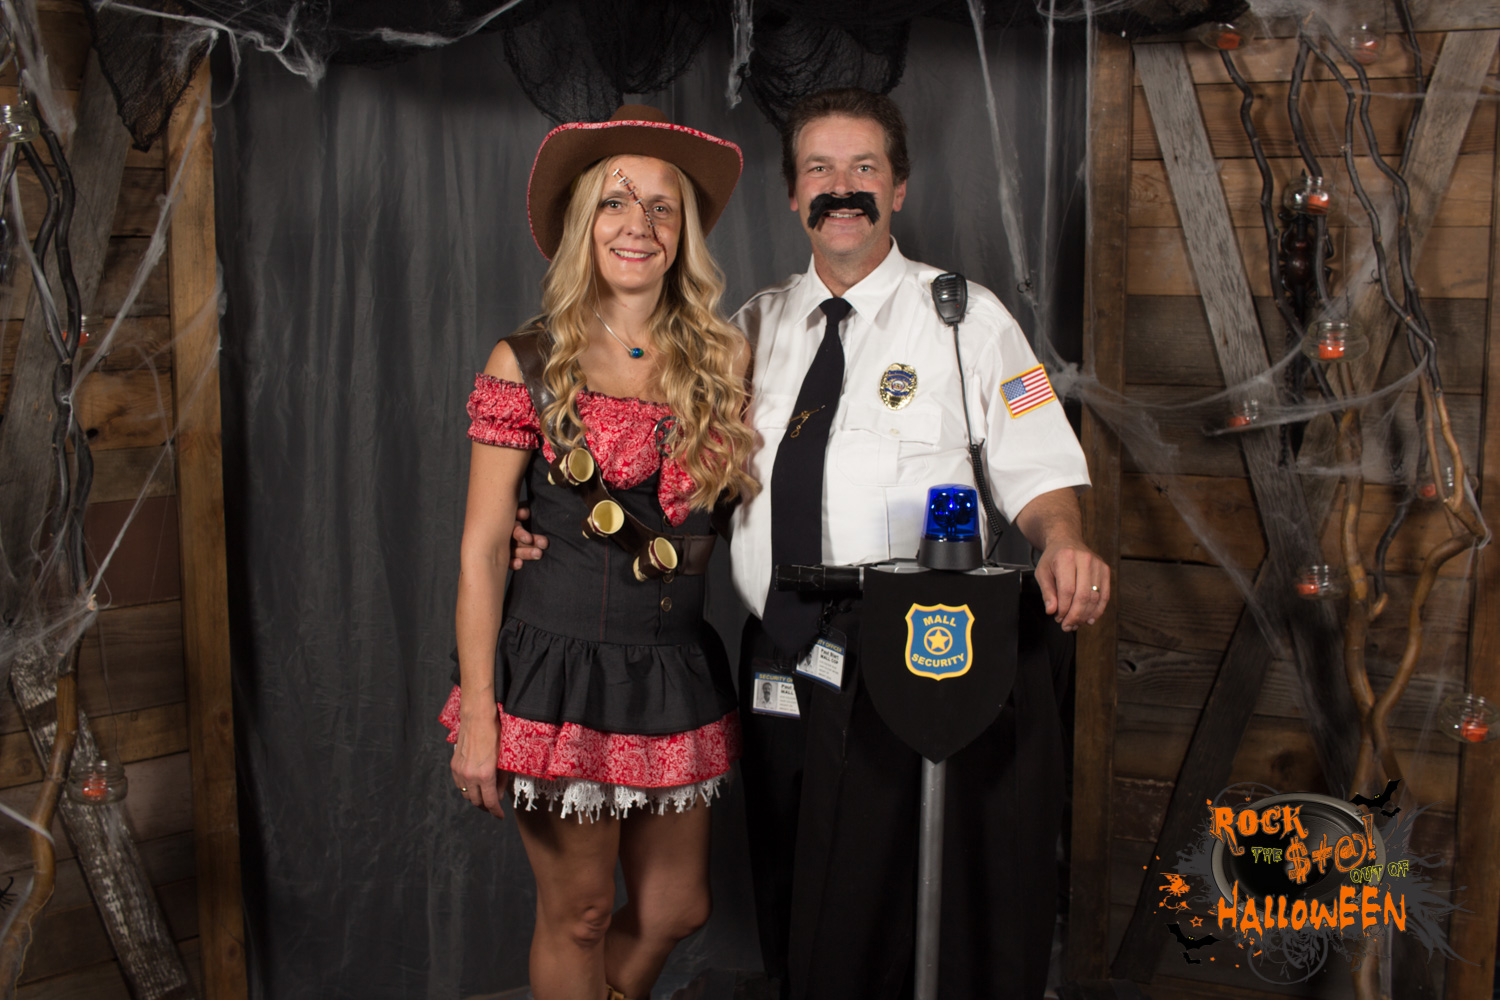 Halloween-PhotoBooth-003-6667